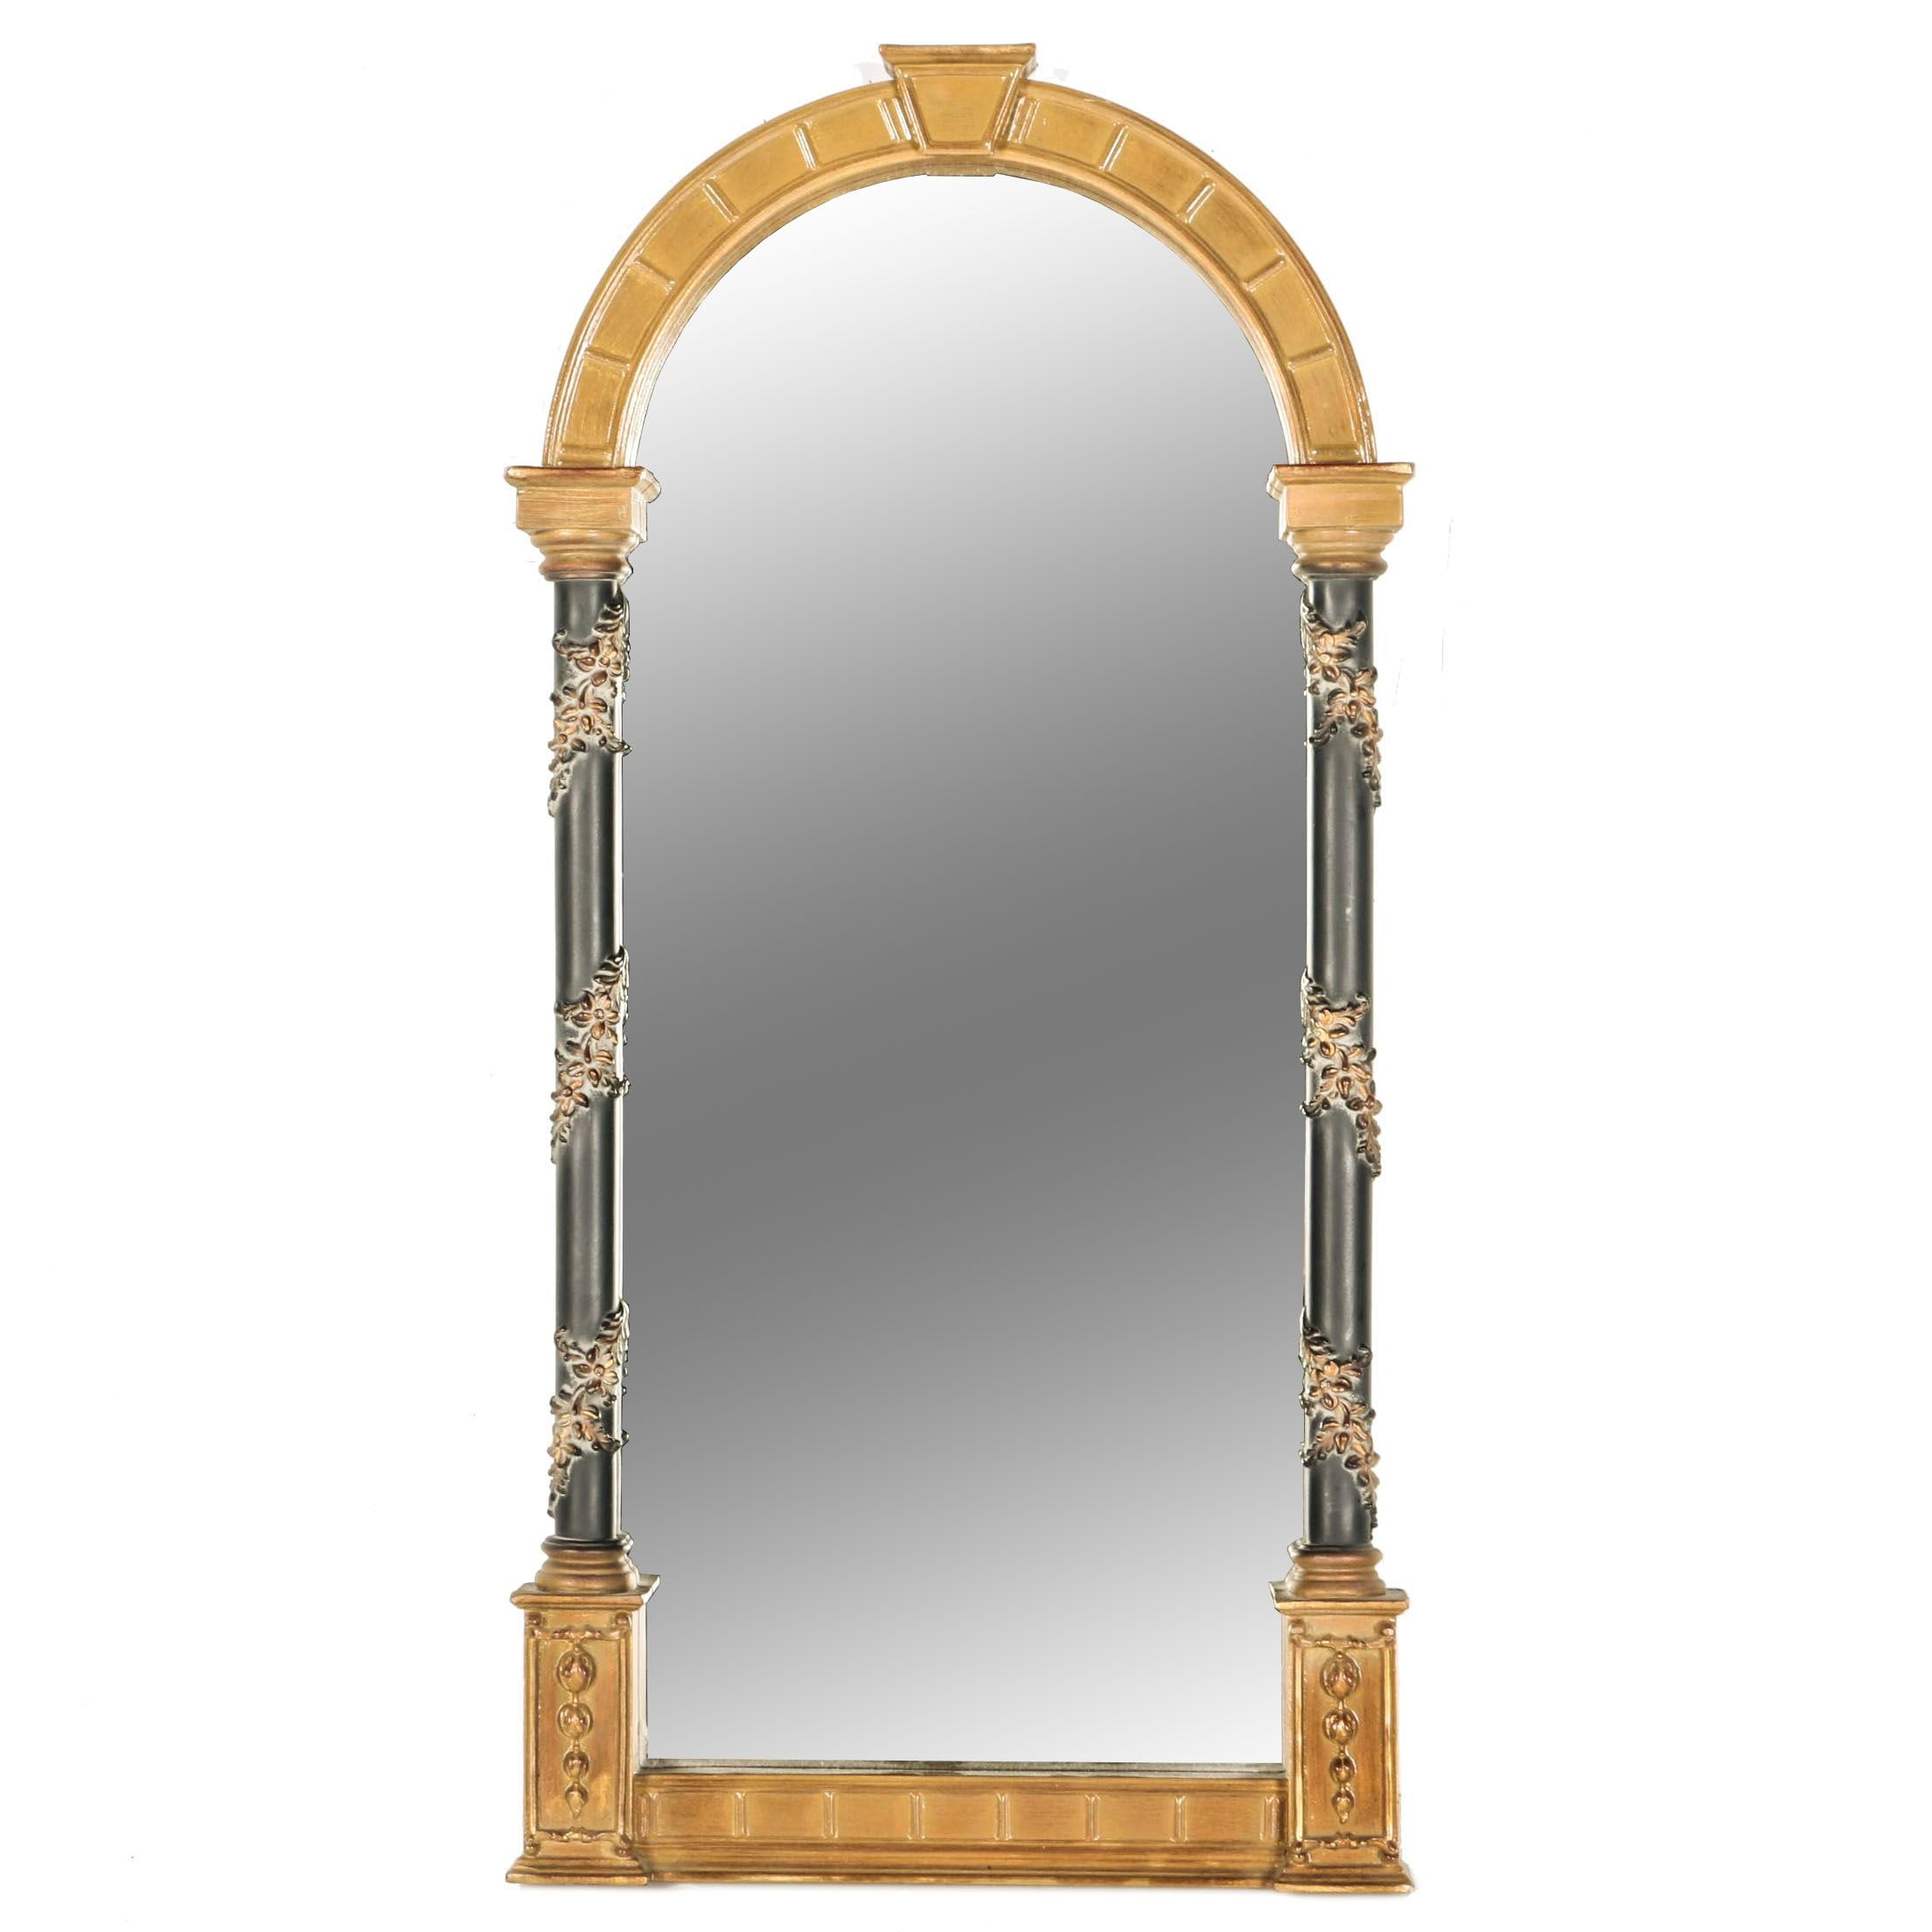 Neoclassical Style Wall Mirror by the Uttermost Company